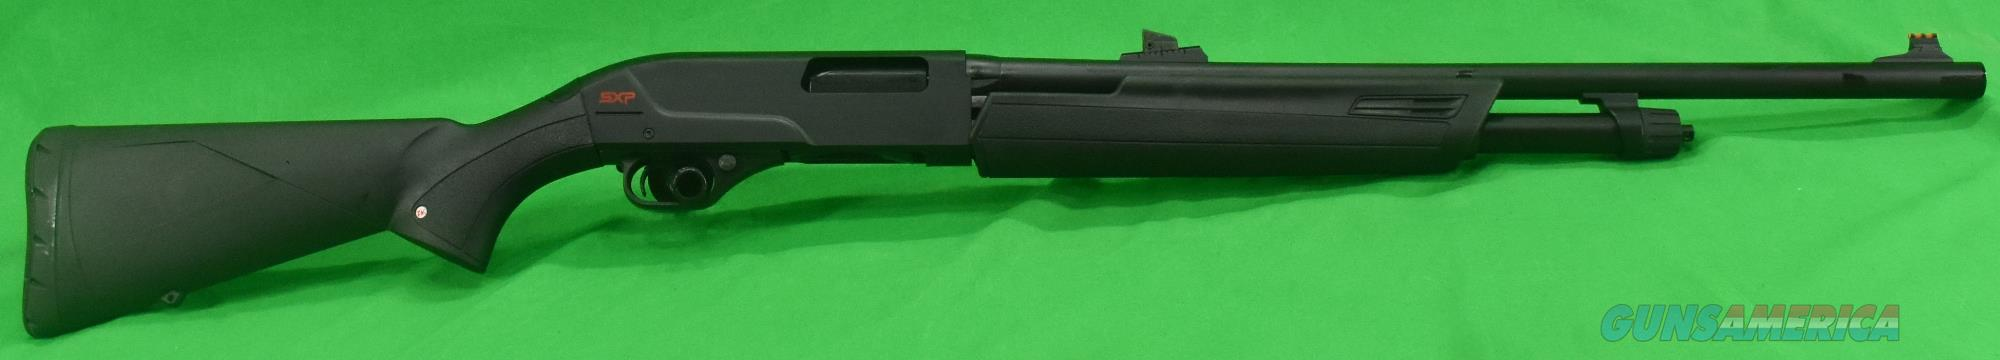 SXP Black Shadow Deer 20Ga 22-3In  512261640  Guns > Shotguns > Winchester Shotguns - Modern > Pump Action > Hunting